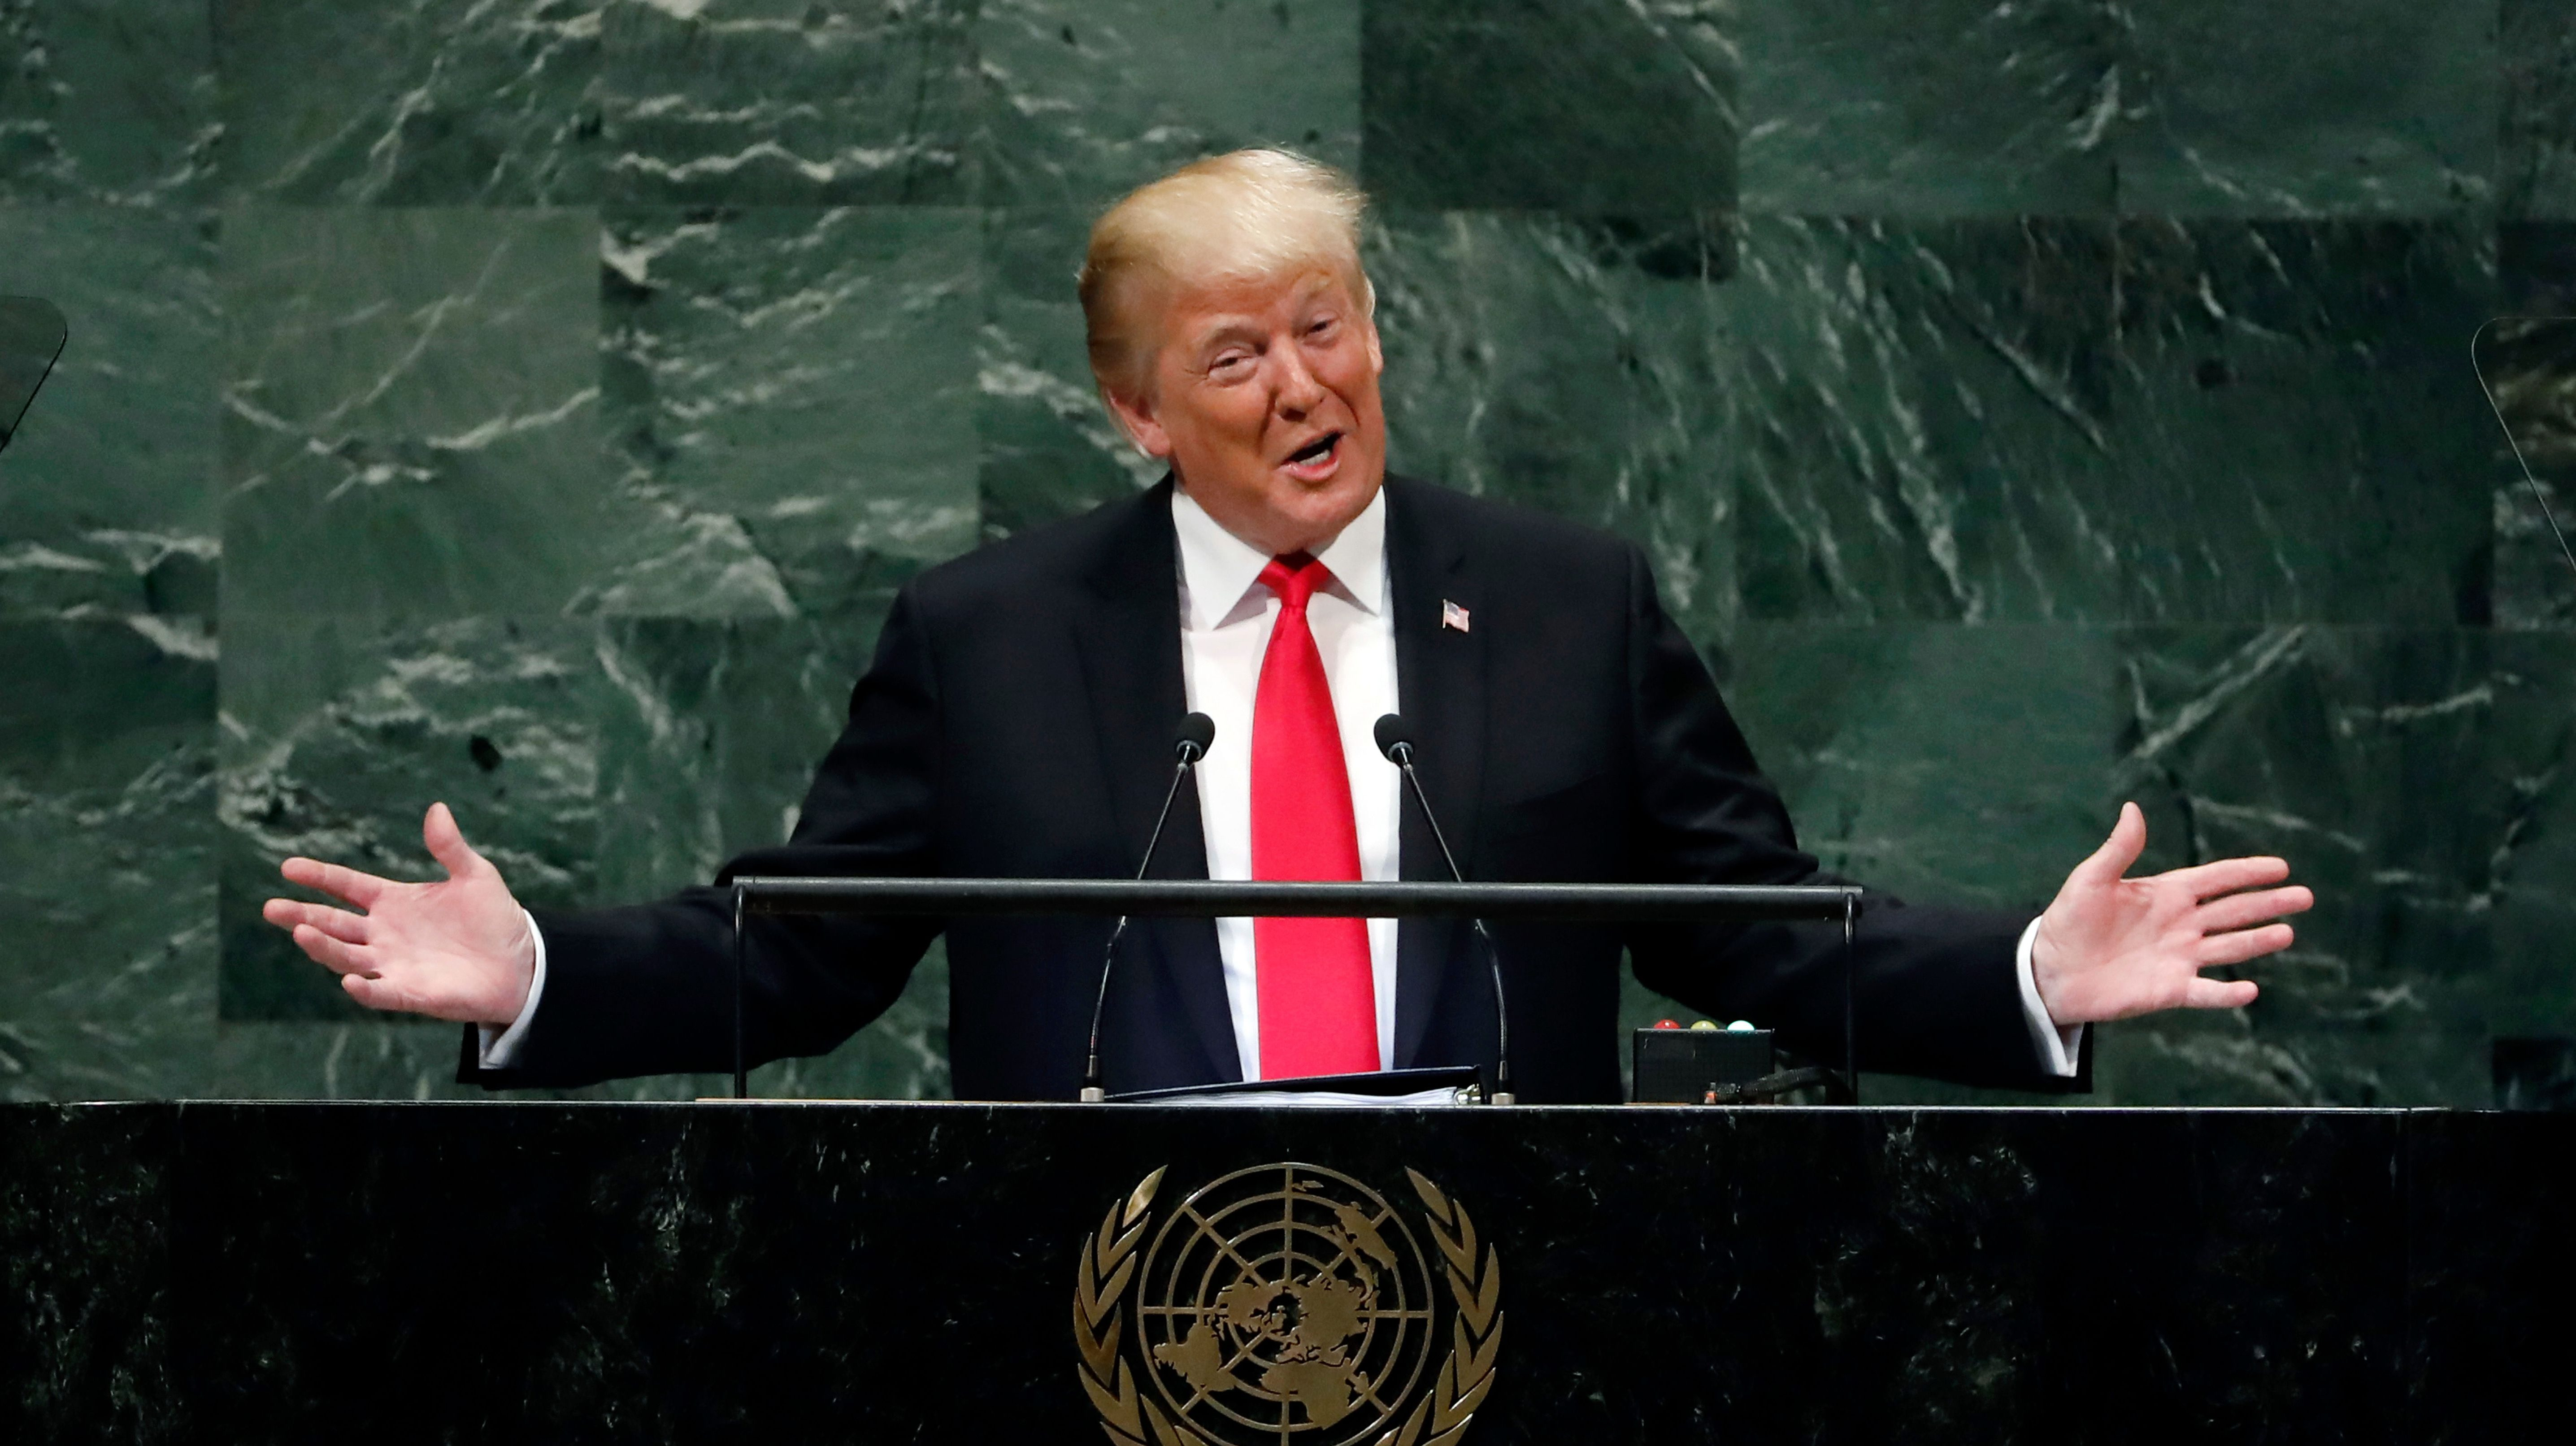 President Donald Trump addresses the 73rd session of the United Nations General Assembly, at U.N. headquarters